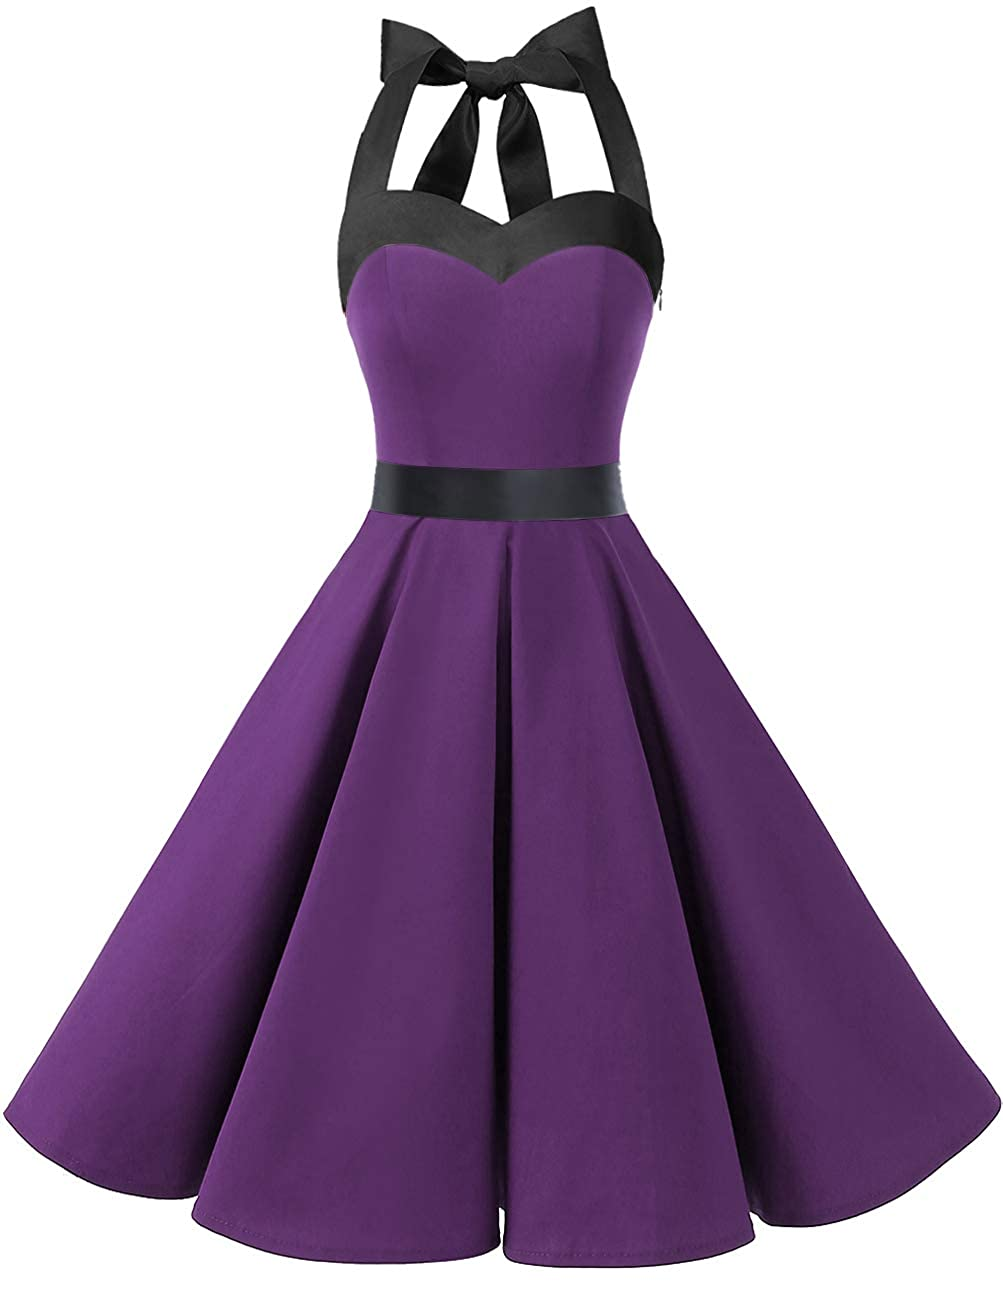 TALLA S. Dresstells® Halter 50s Rockabilly Polka Dots Audrey Dress Retro Cocktail Dress Purple Black S